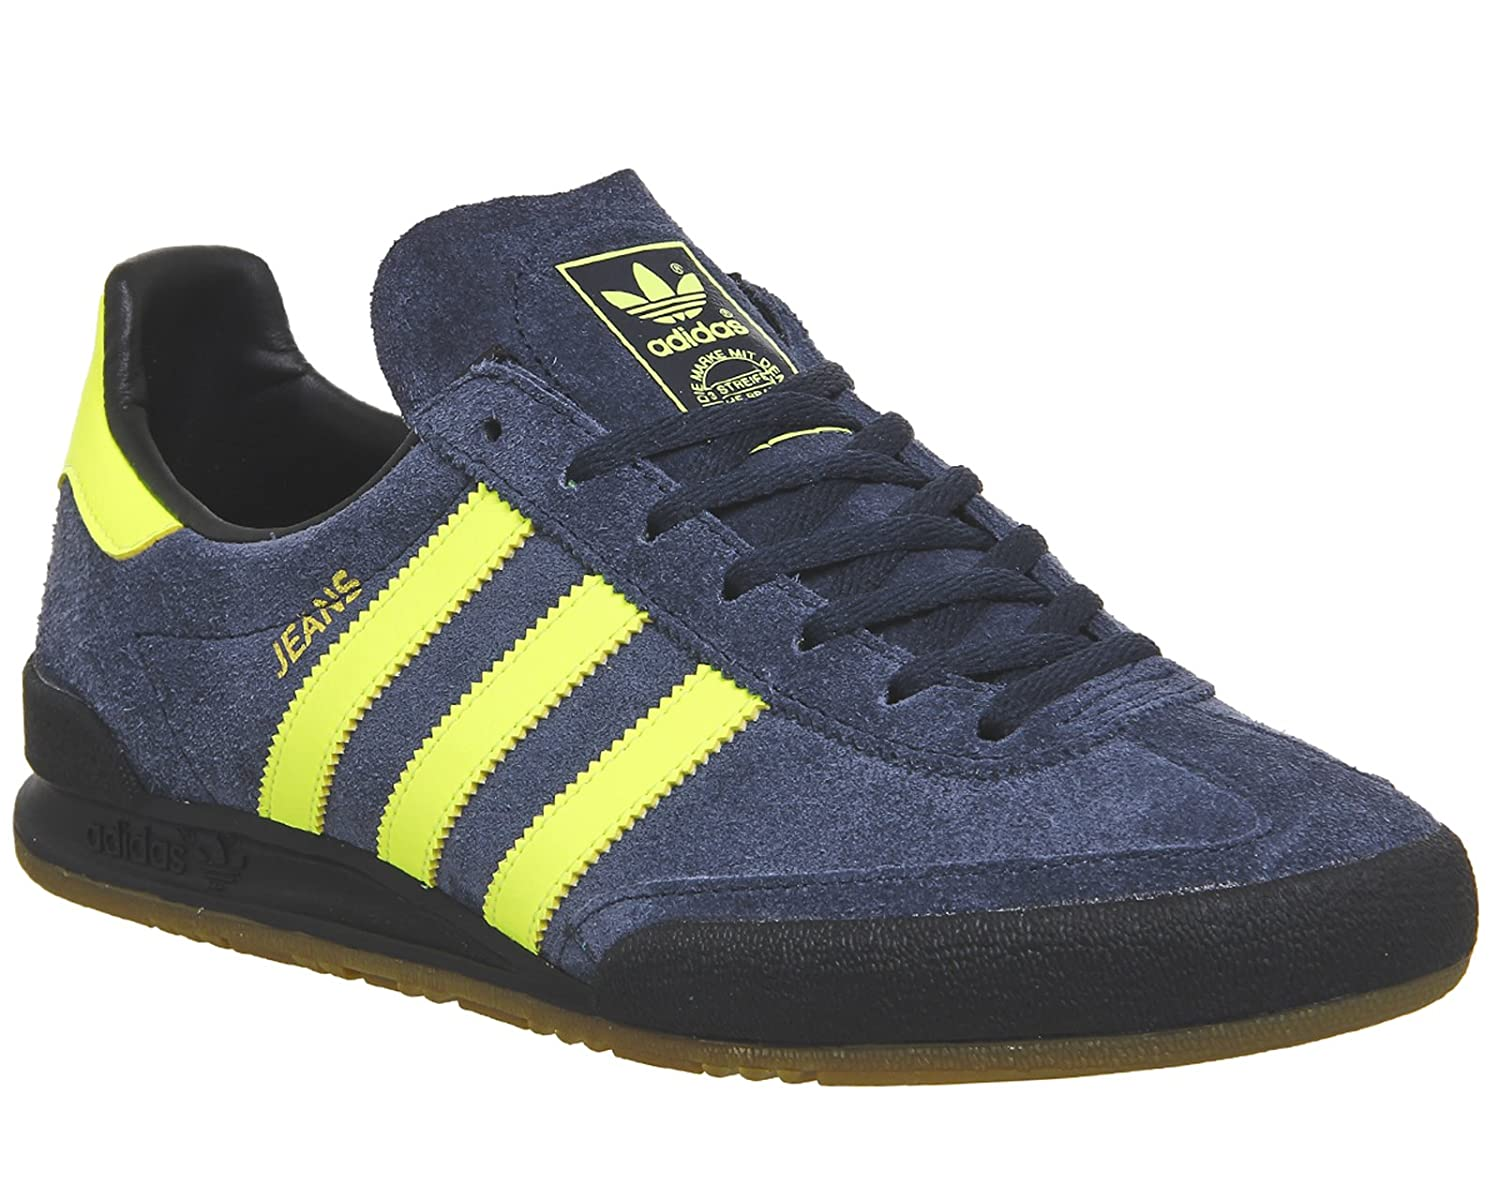 los angeles e4316 7867a adidas Jeans, Mens Trainers Amazon.co.uk Shoes  Bags